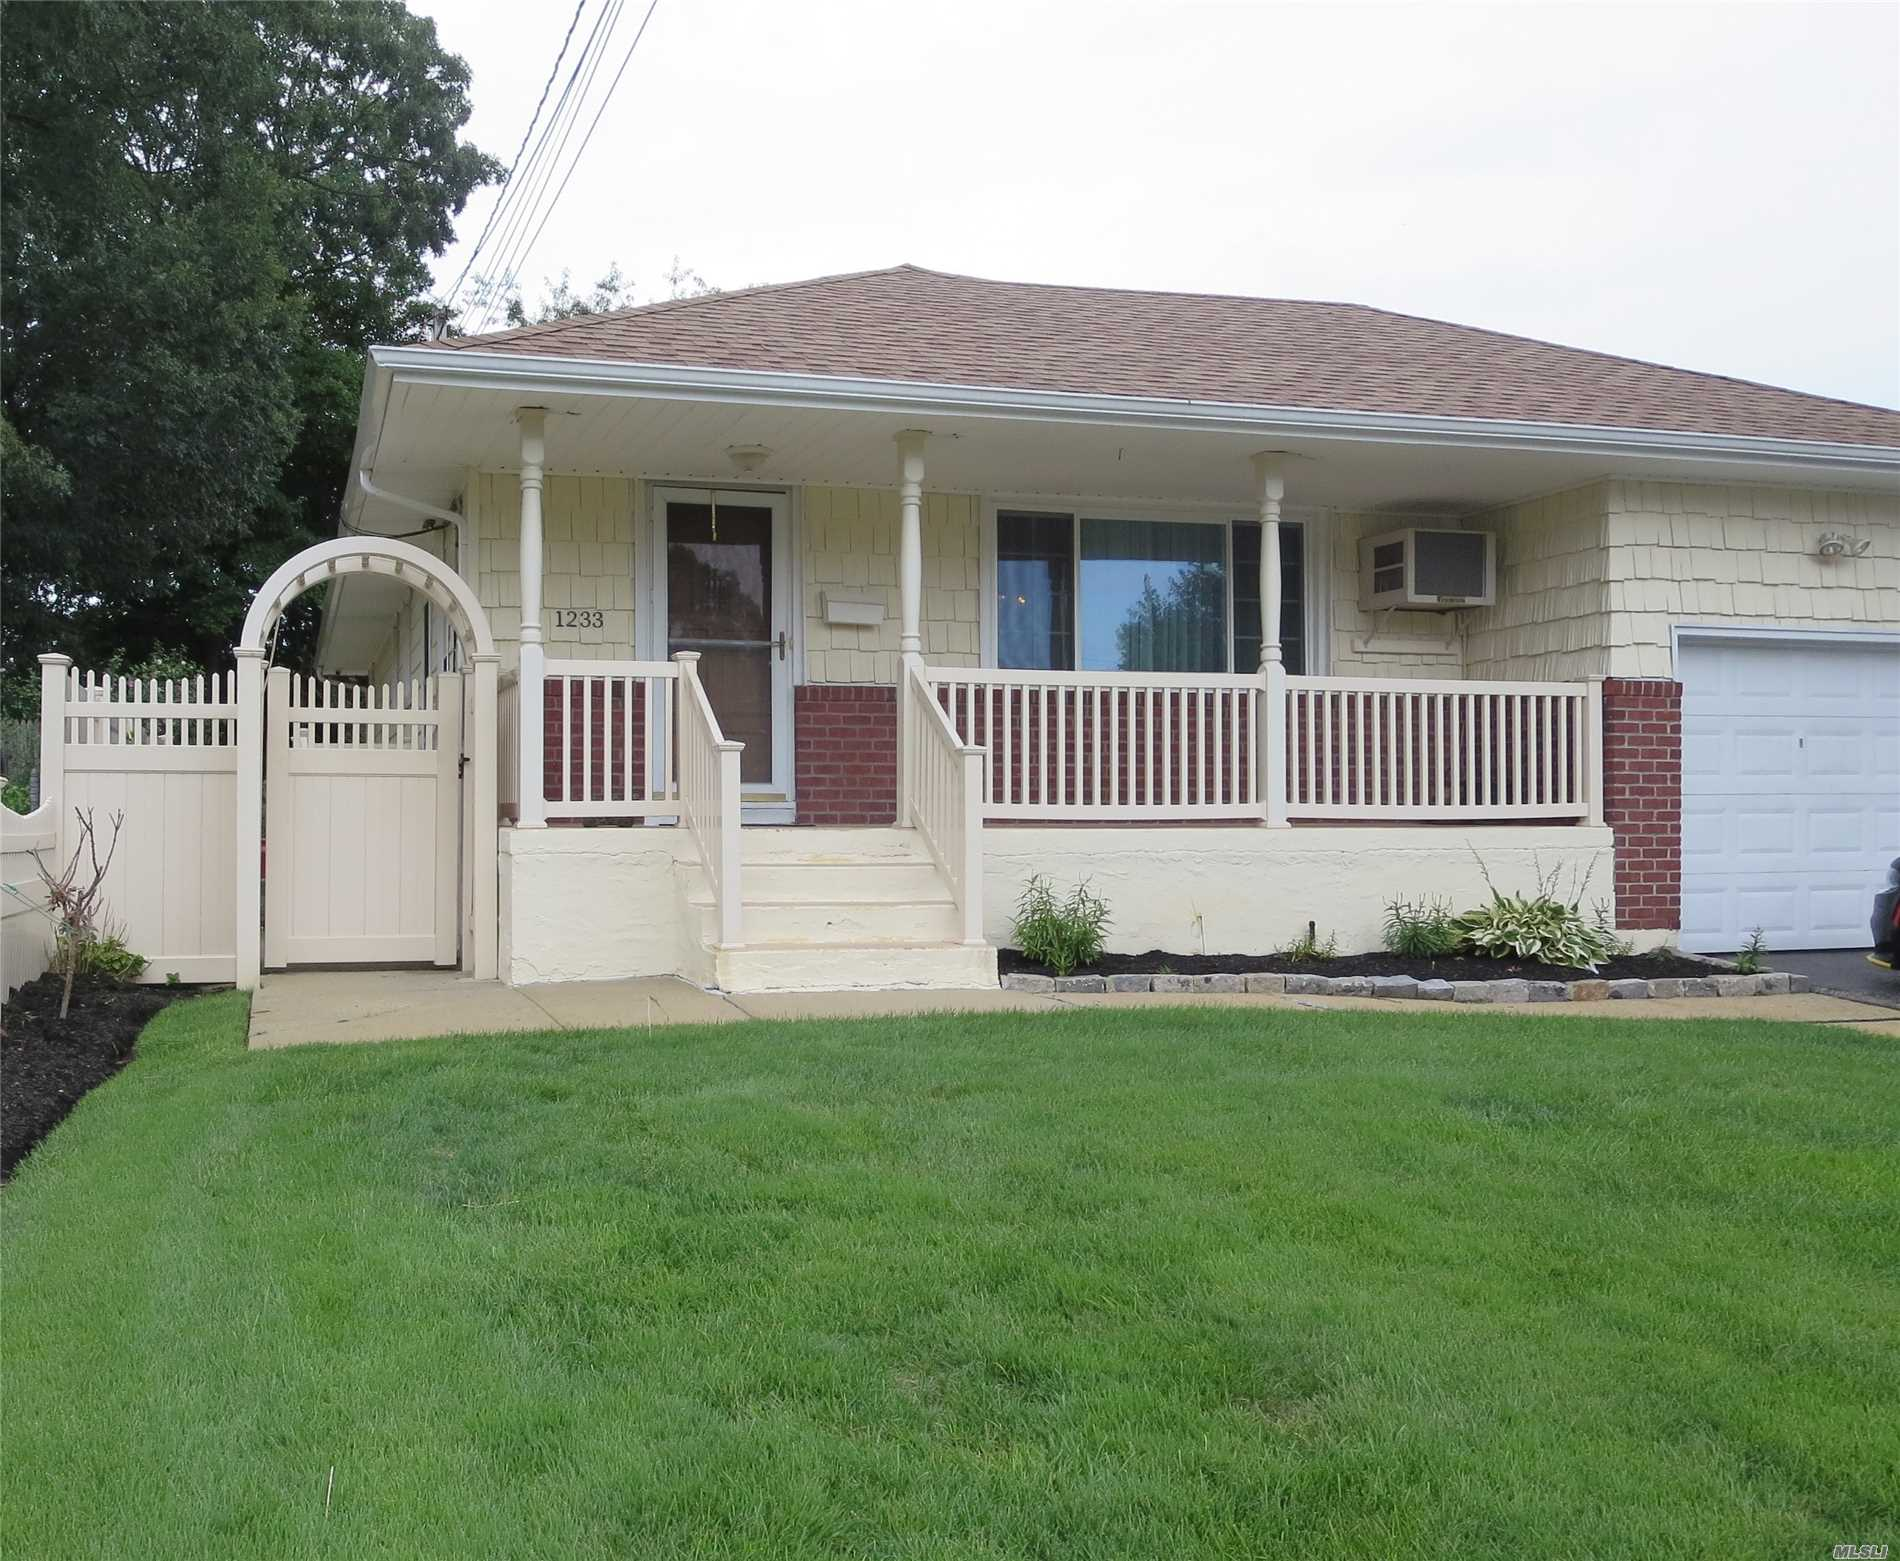 Three Bedroom Terra Ranch On Oversized Property. Full Finished Basement With High Ceilings. Roof (5Years), Updated Windows, Hdwd Floors And Inground Sprinklers. Large Backyard With New Pvc Fencing.